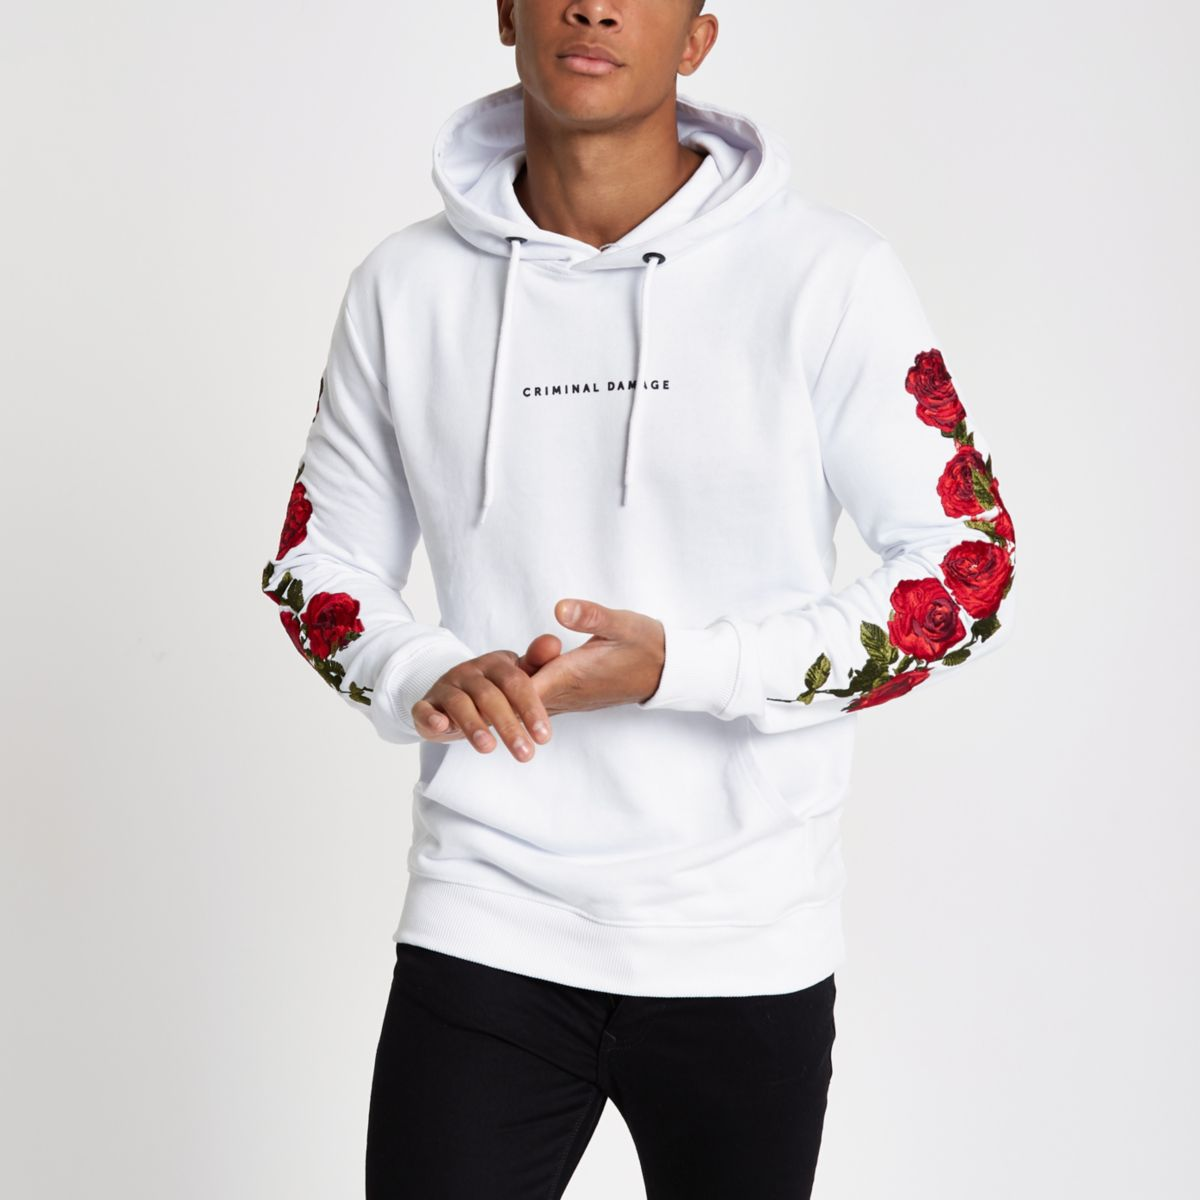 Criminal Damage White Rose Embroidered Hoodie by River Island